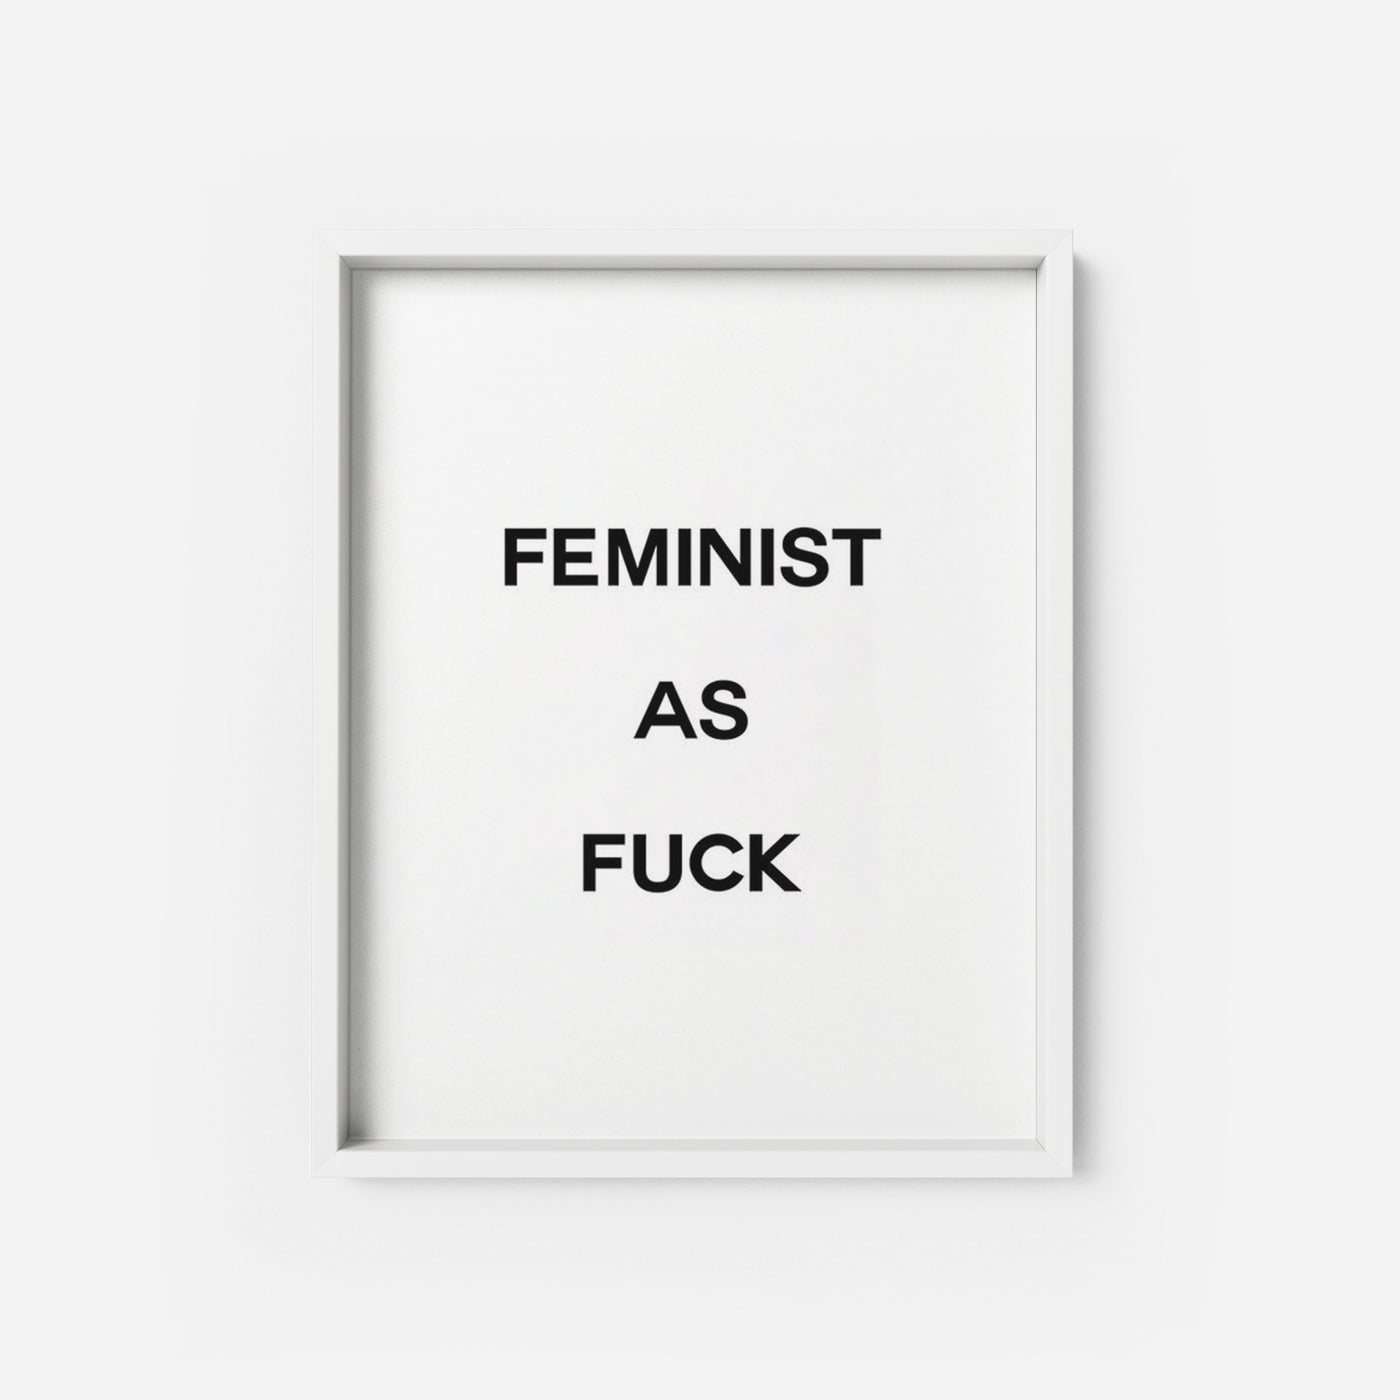 Feminist AF - THE PRINTABLE CONCEPT - Printable art posterDigital Download -